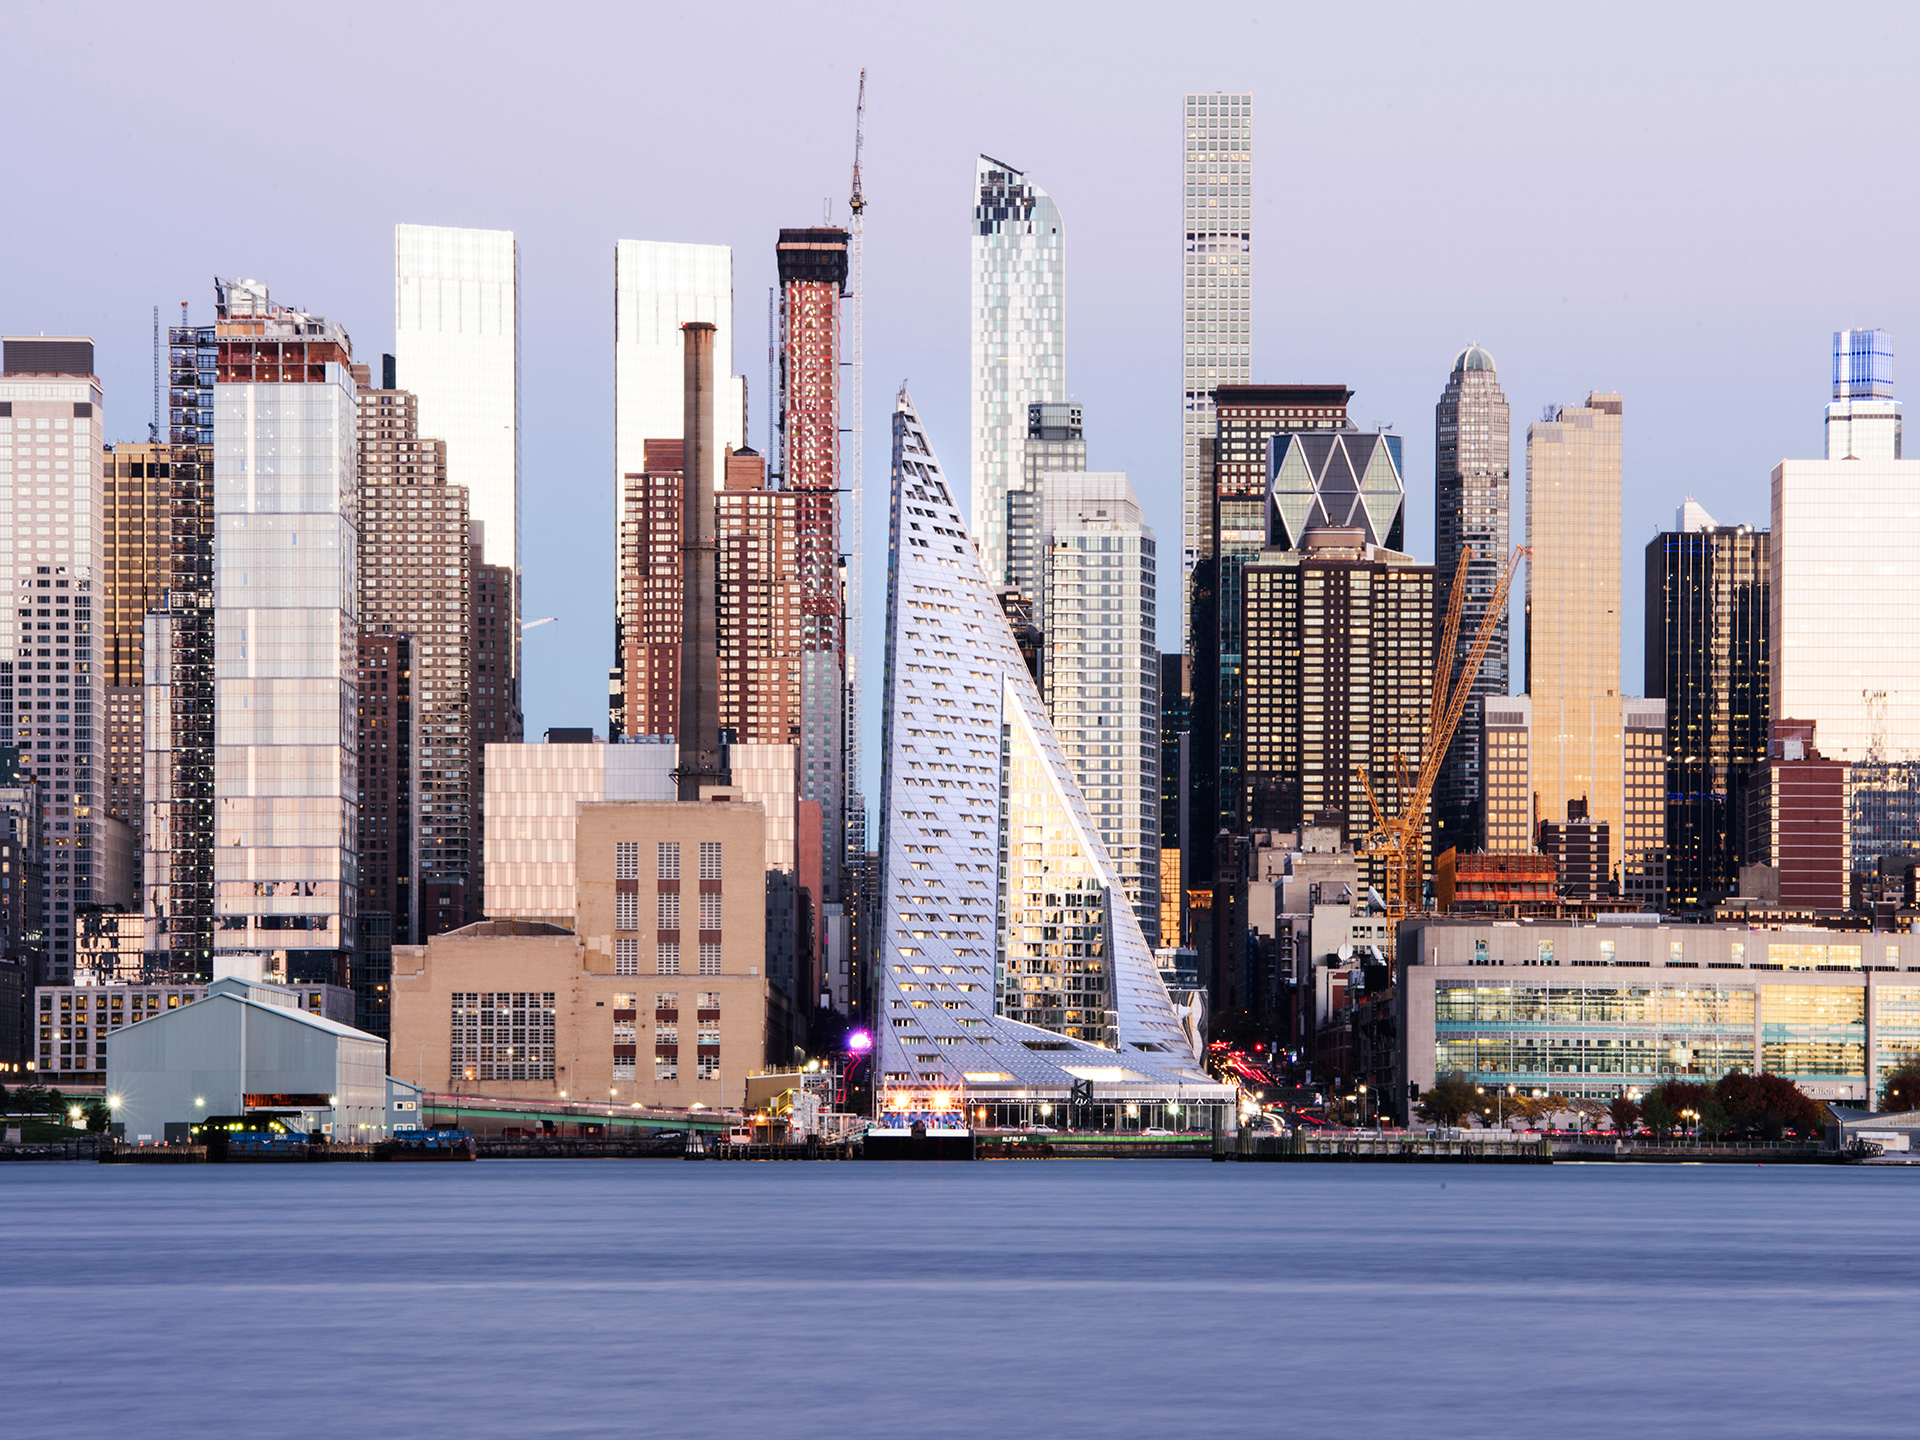 View of Midtown West from New Jersey across the Hudson River | New York | Vladimir Belogolovsky | STIRworld